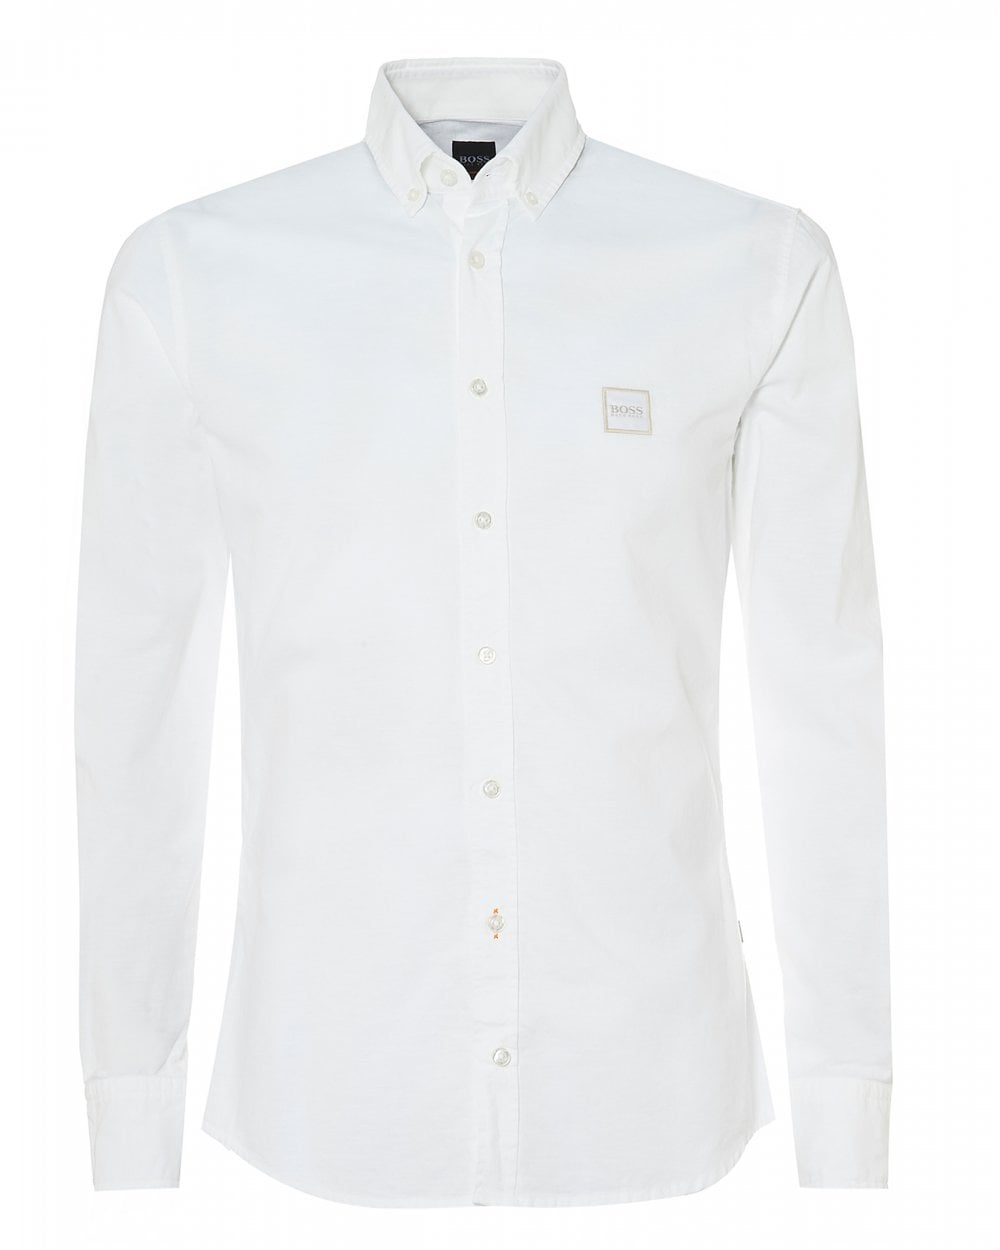 e79516567 BOSS Casual Mens Mabsoot Slim Fit White Oxford Shirt